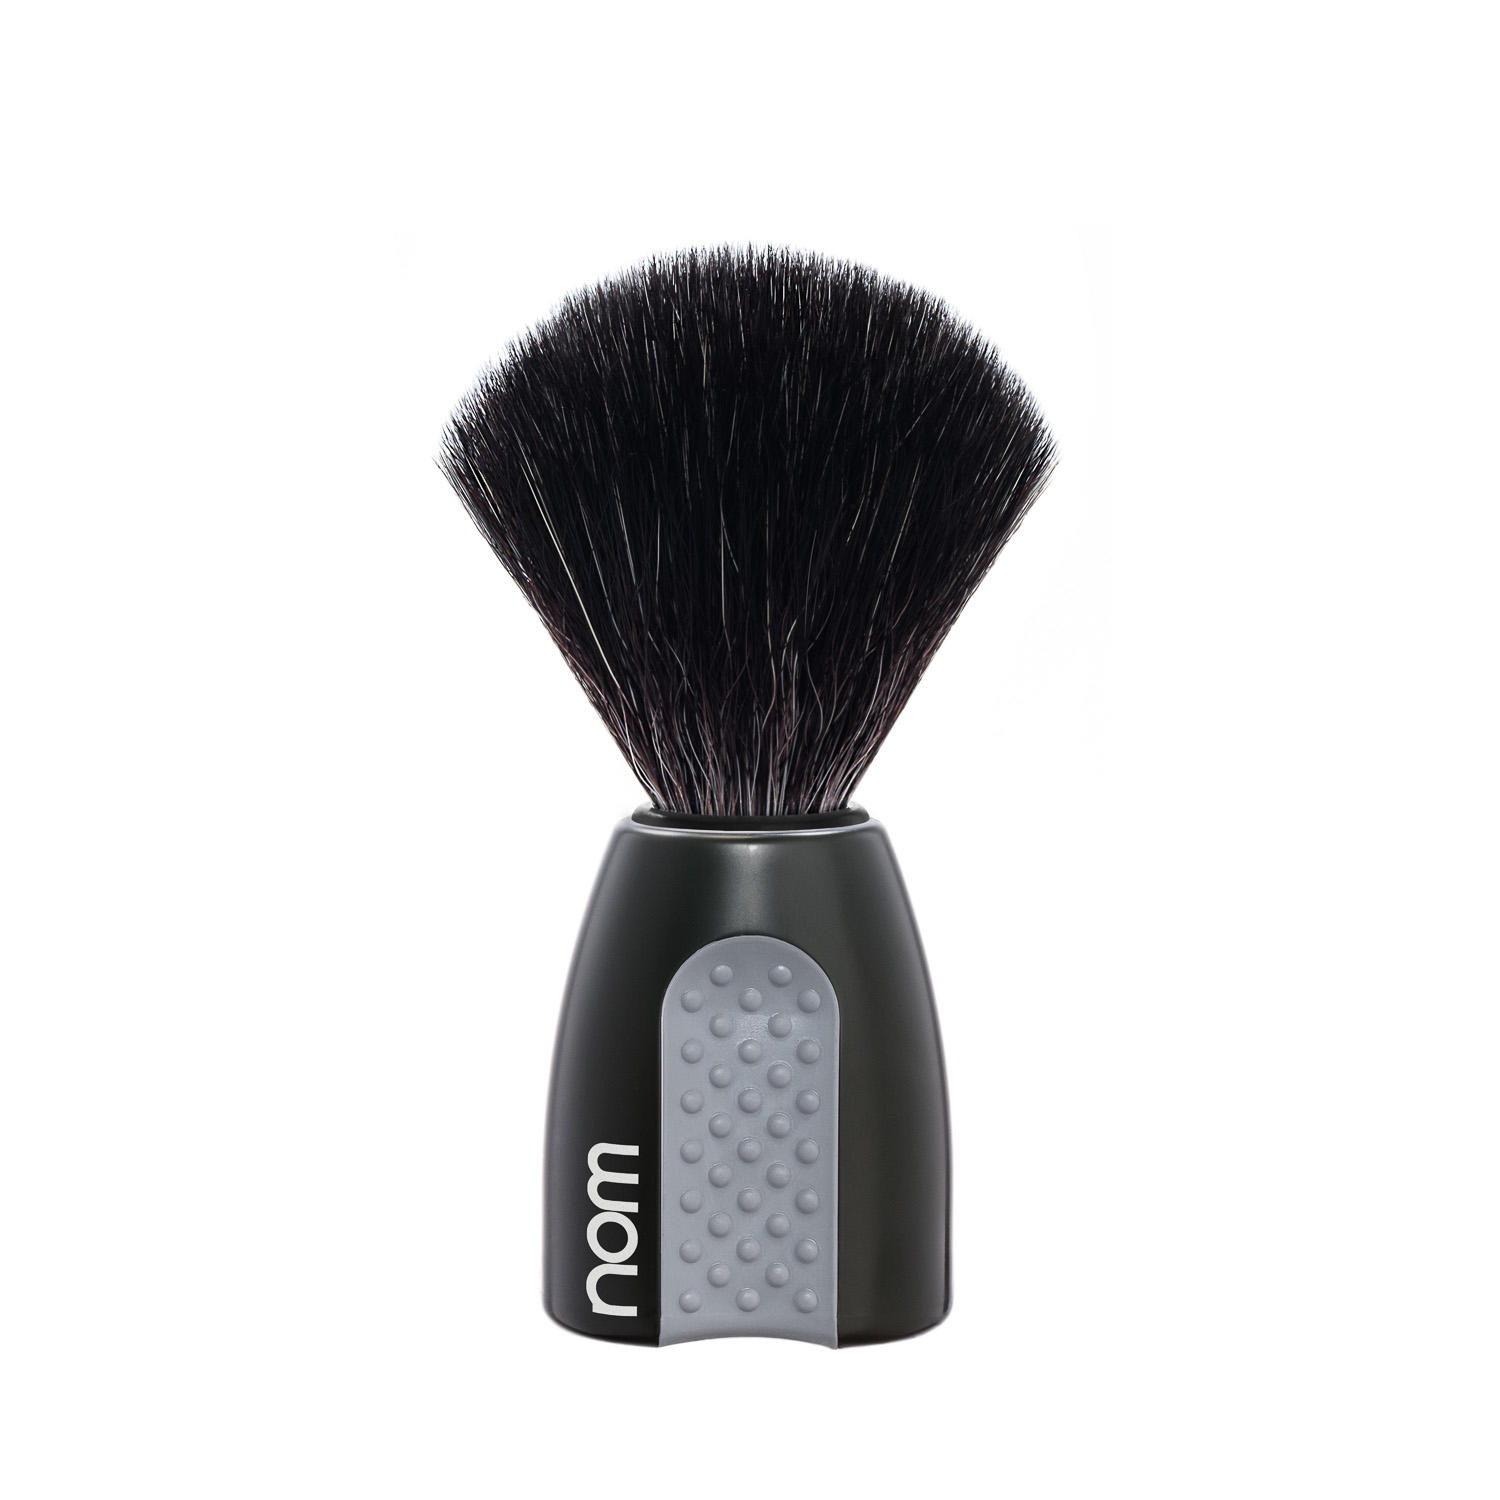 ERIK21BL NOM, ERIK, Black Handle, Black Fibre, Shaving Brush